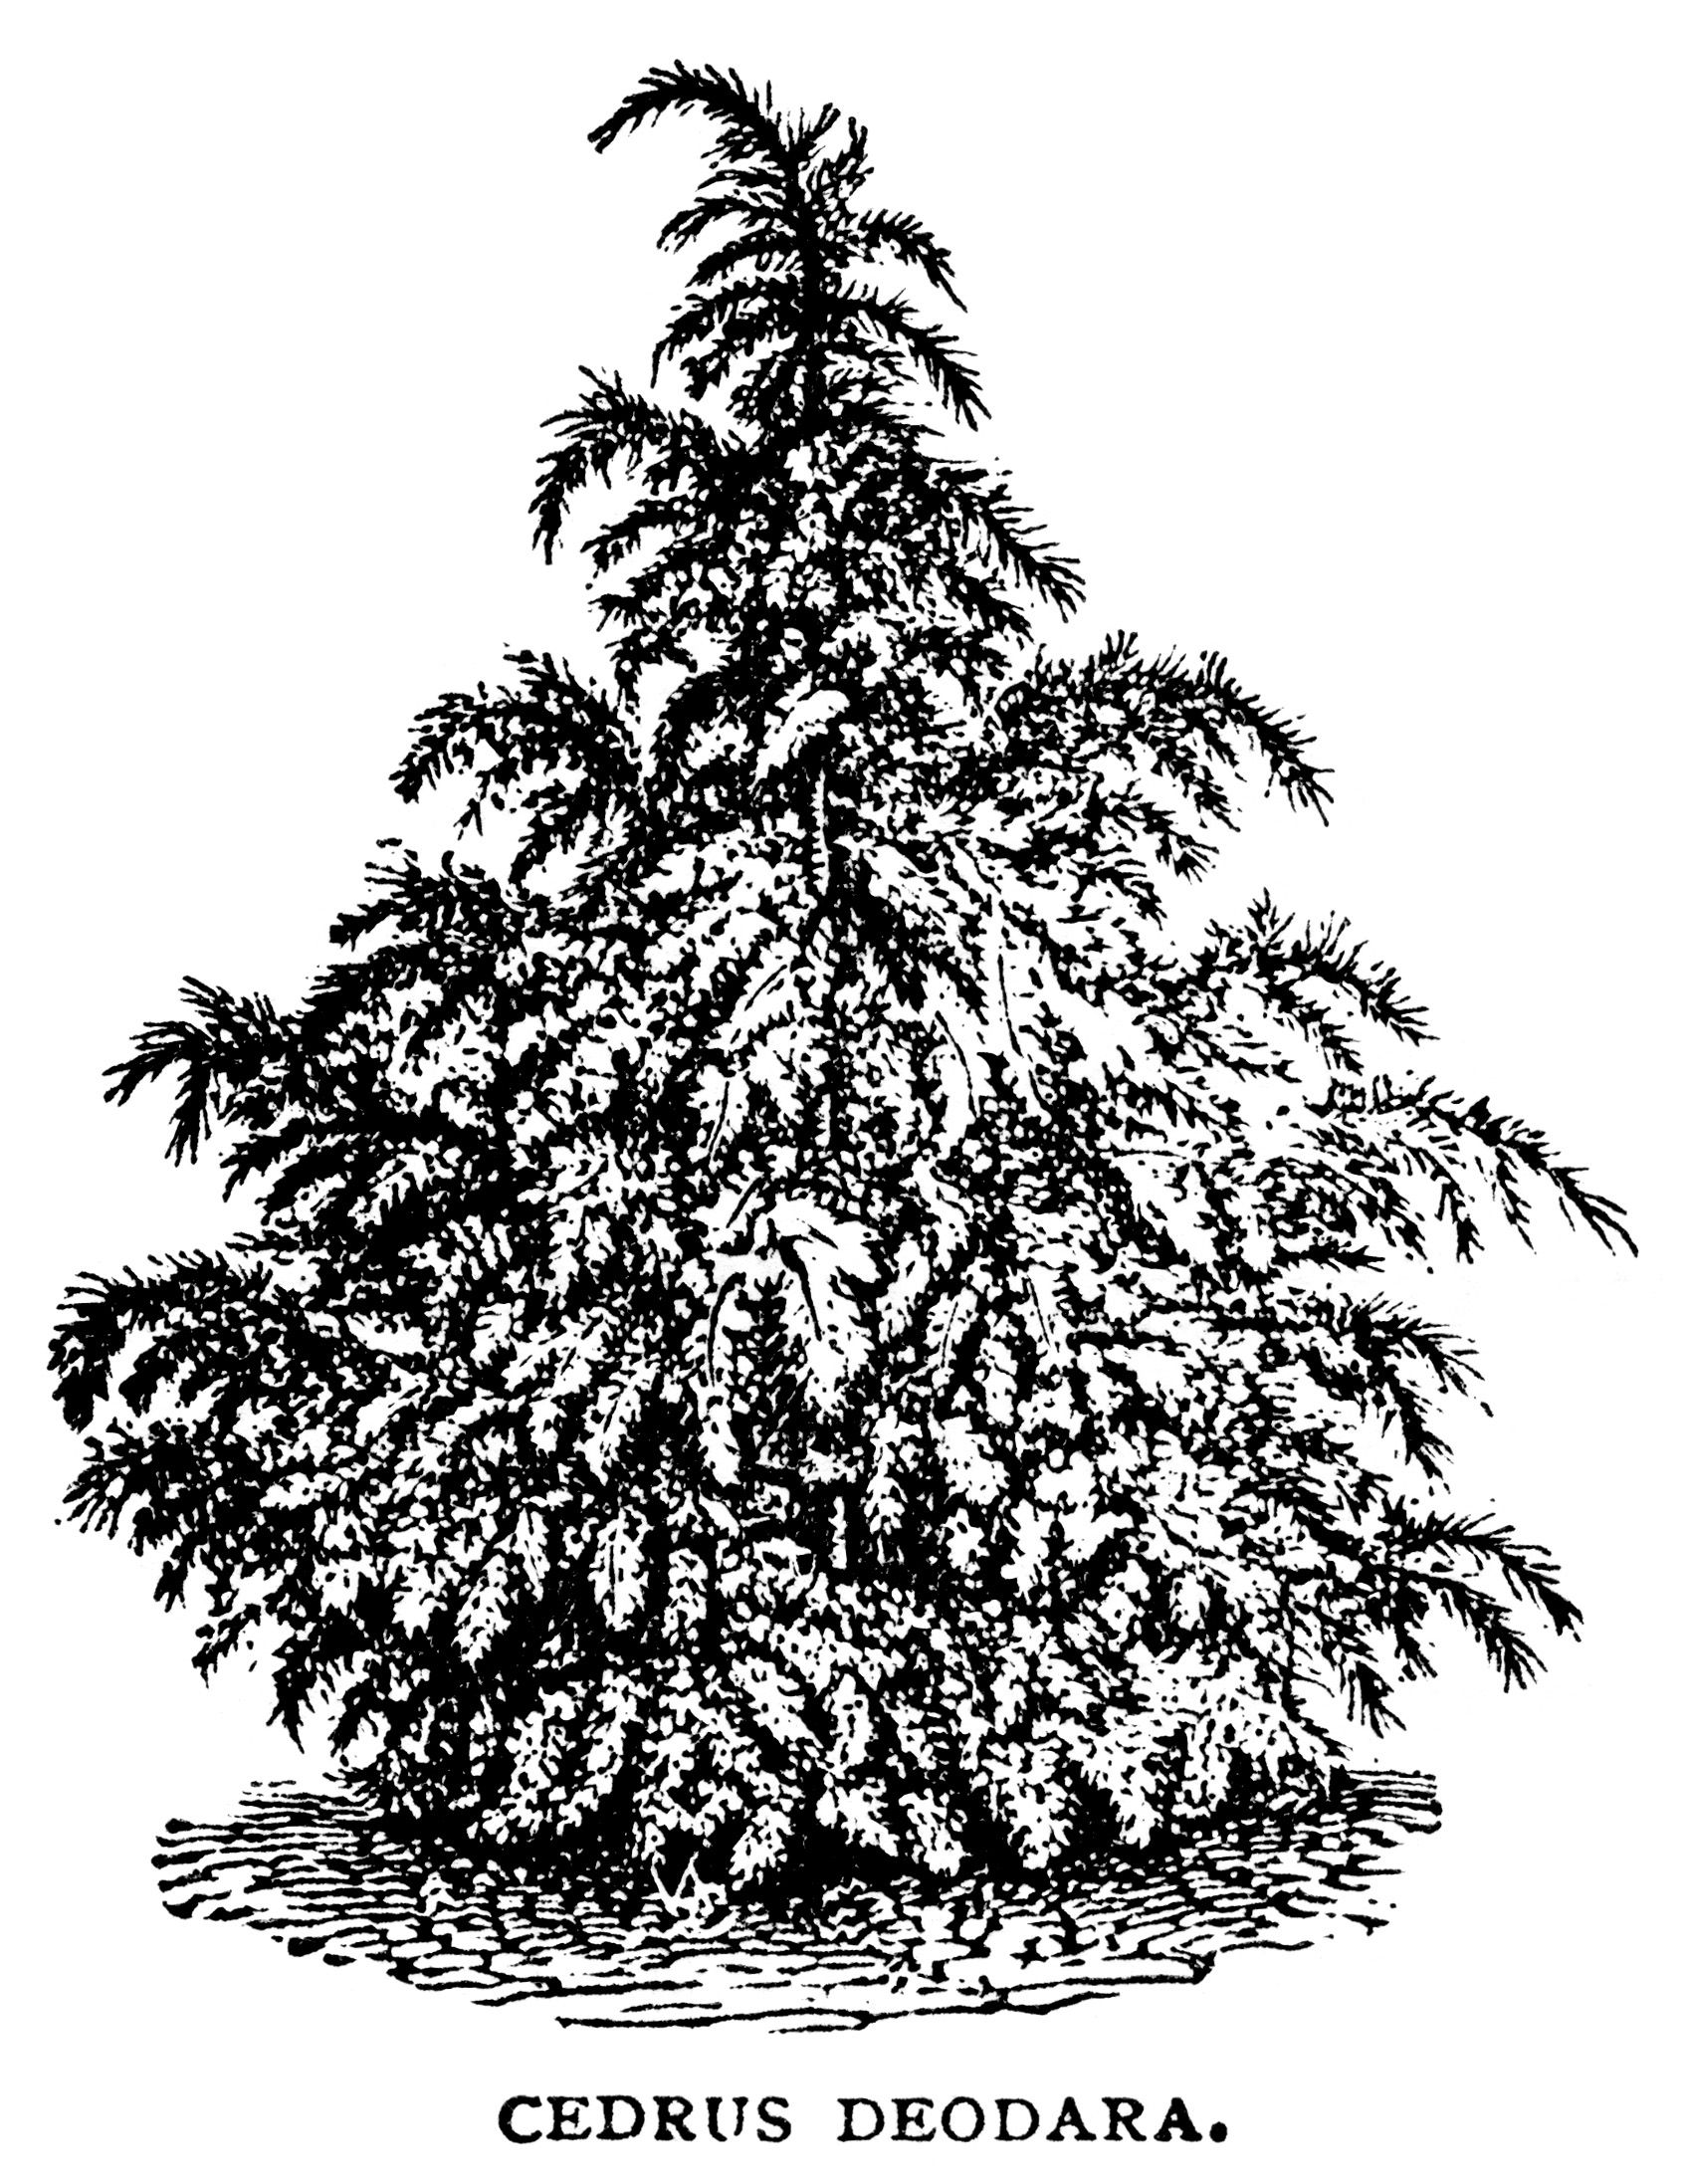 Black And White Graphics Botanical Spruce Tree Illustration Vintage Clip Art Cedrus Deodara Christmas Sketch